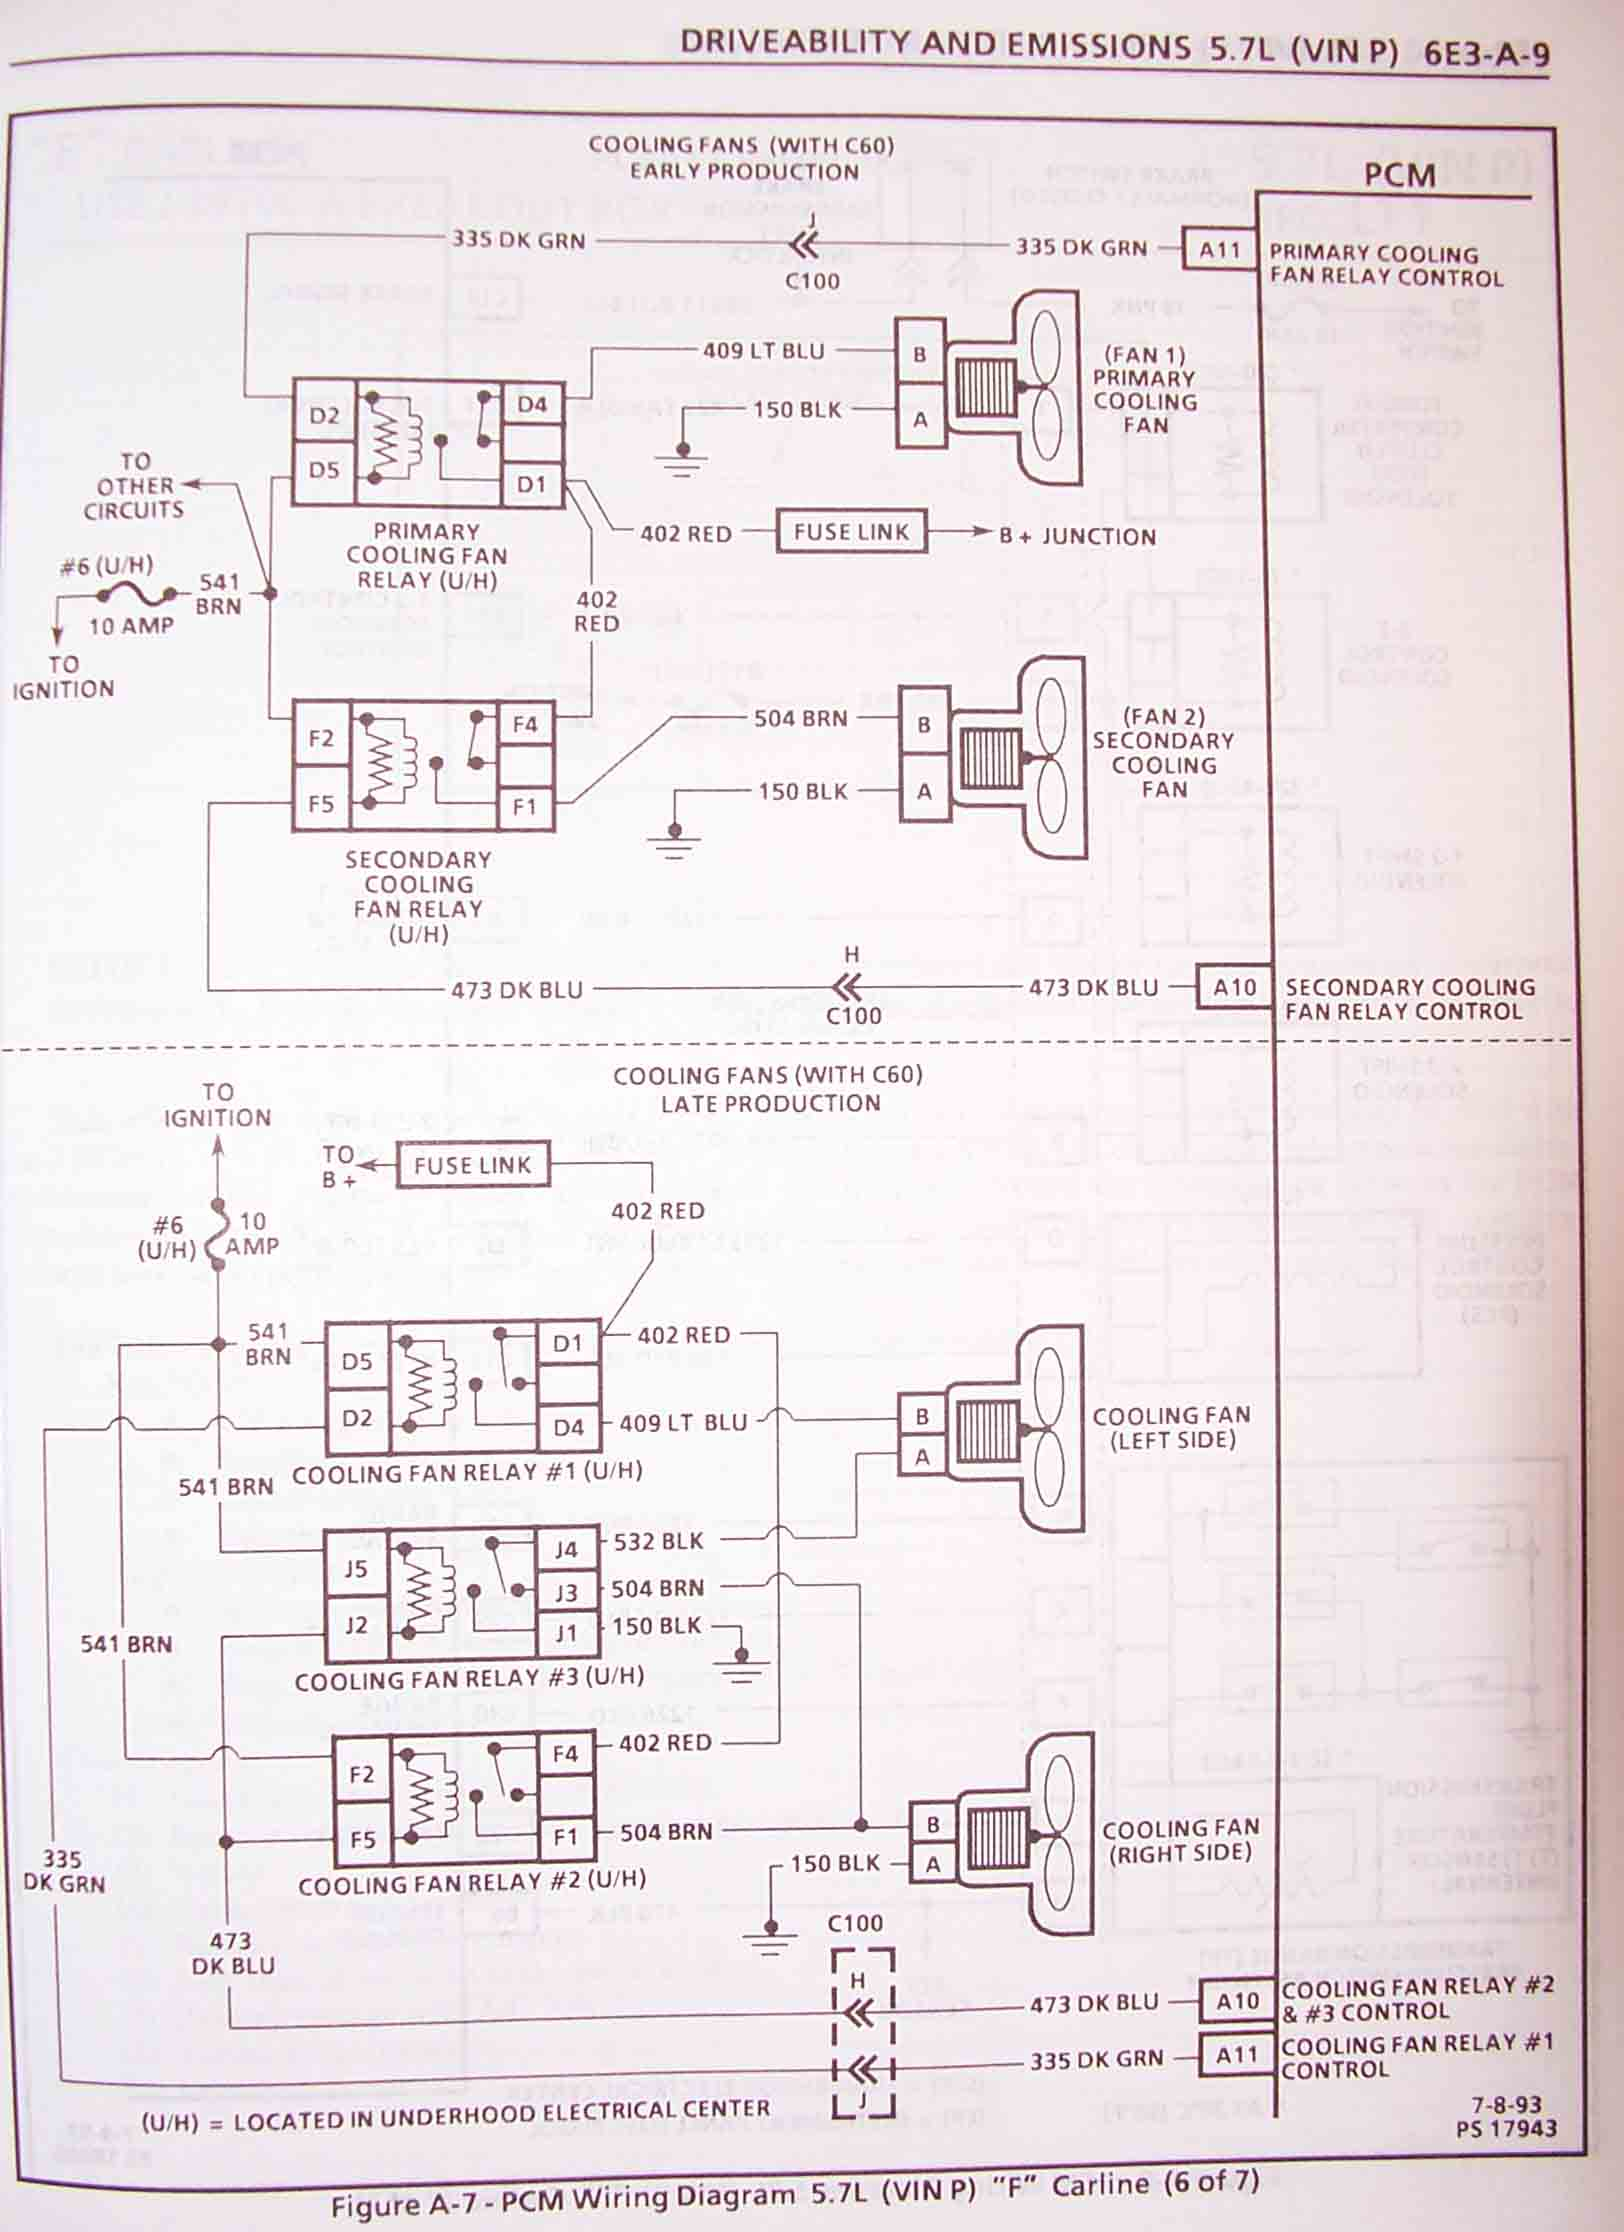 lt1 wiring diagram 1982 chevy c10 ignition 1995 f body wire harness schematics these are specifically for 1994 camaro firebird 5 7l however will be very similar to